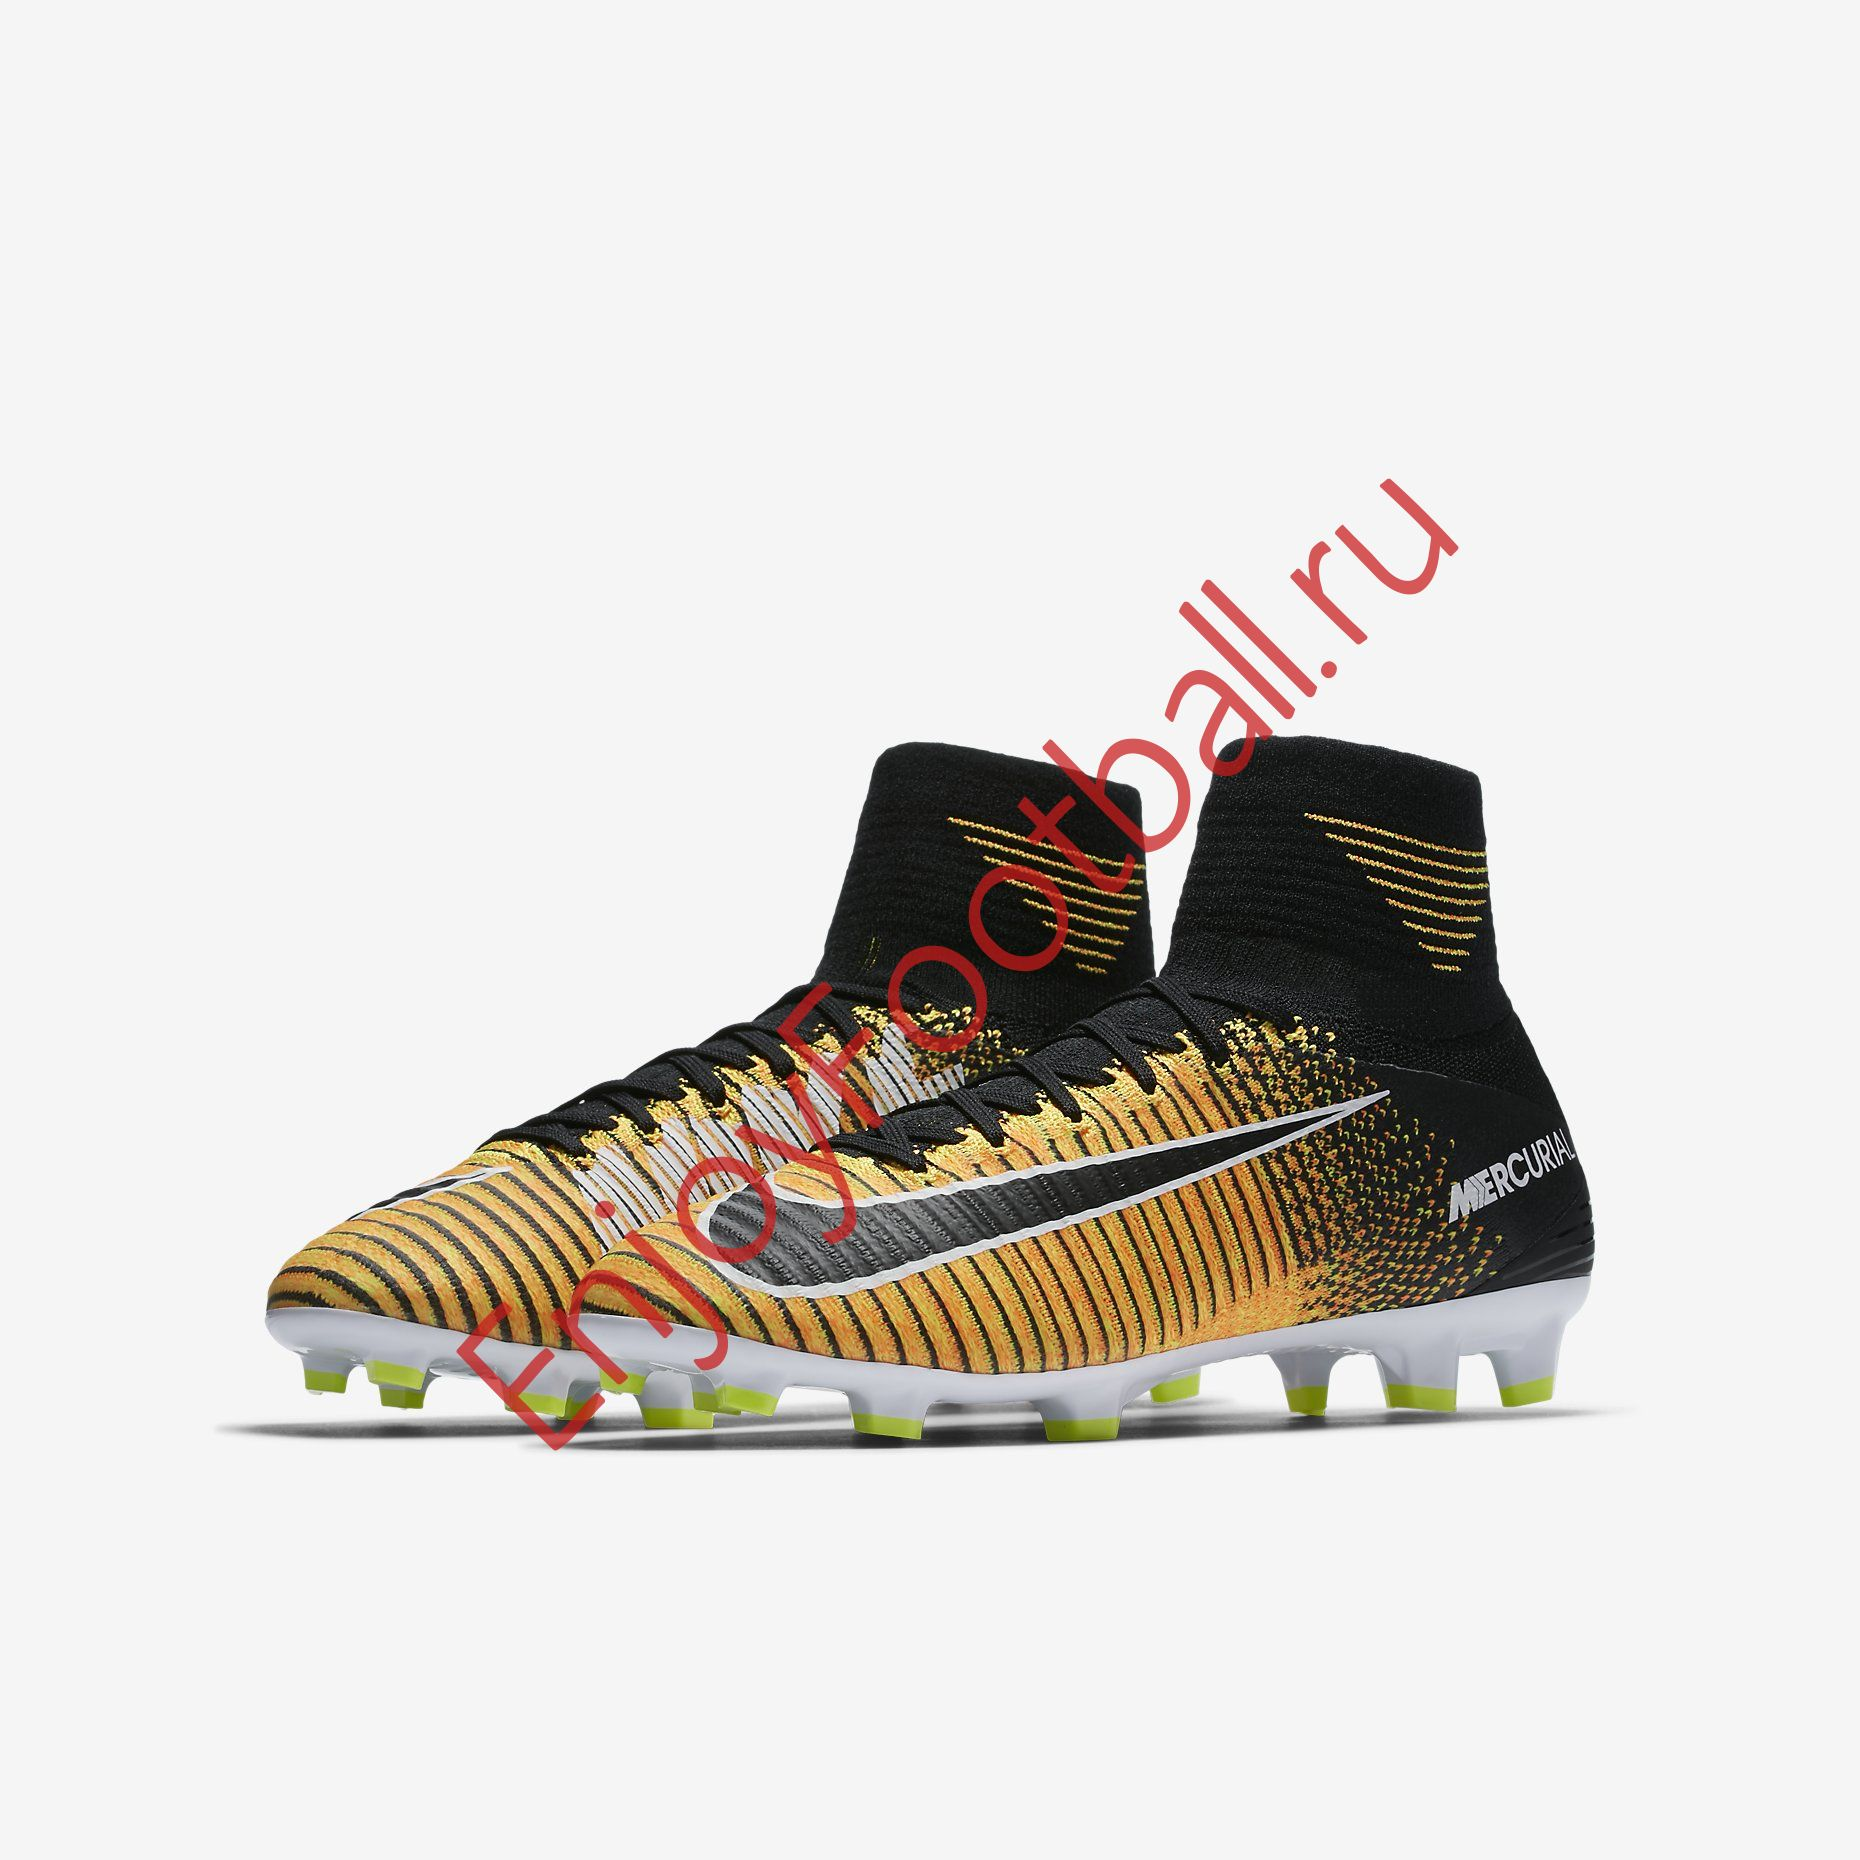 748b7073d1bf Детские бутсы NIKE MERCURIAL SUPERFLY V DF FG 921526-801 JR купить в ...